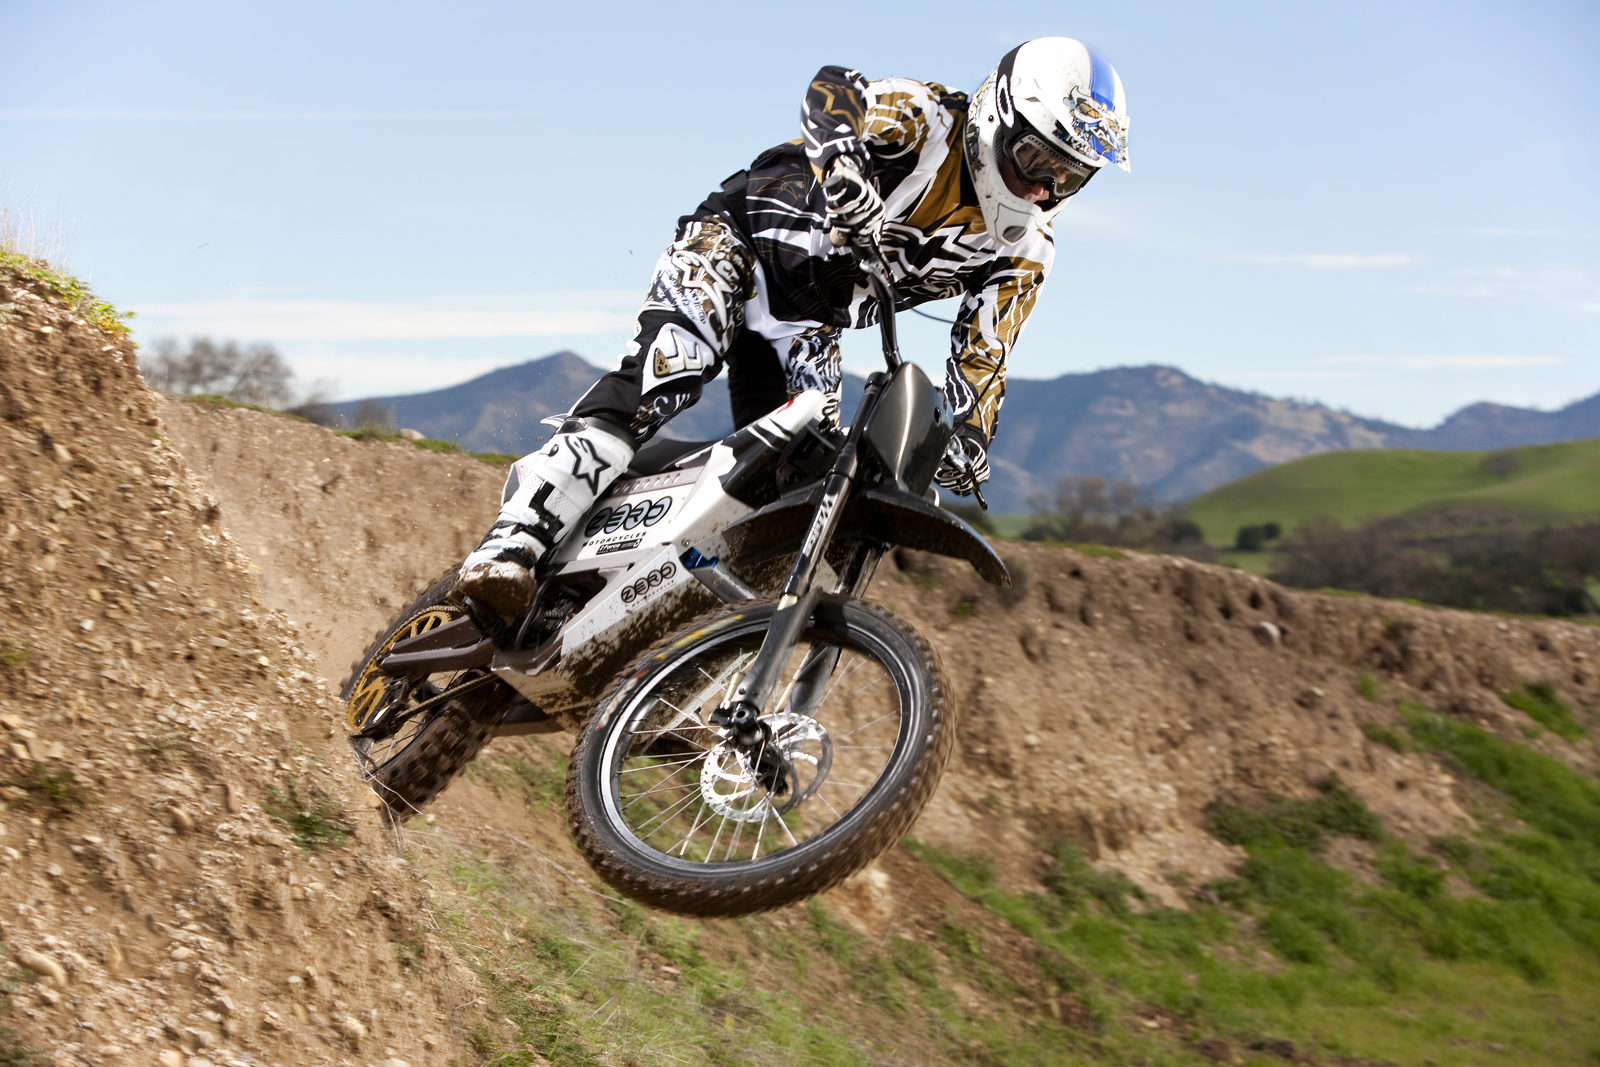 2010 Zero X Electric Motorcycle: Zaca Station - Jump Off Wall Burm